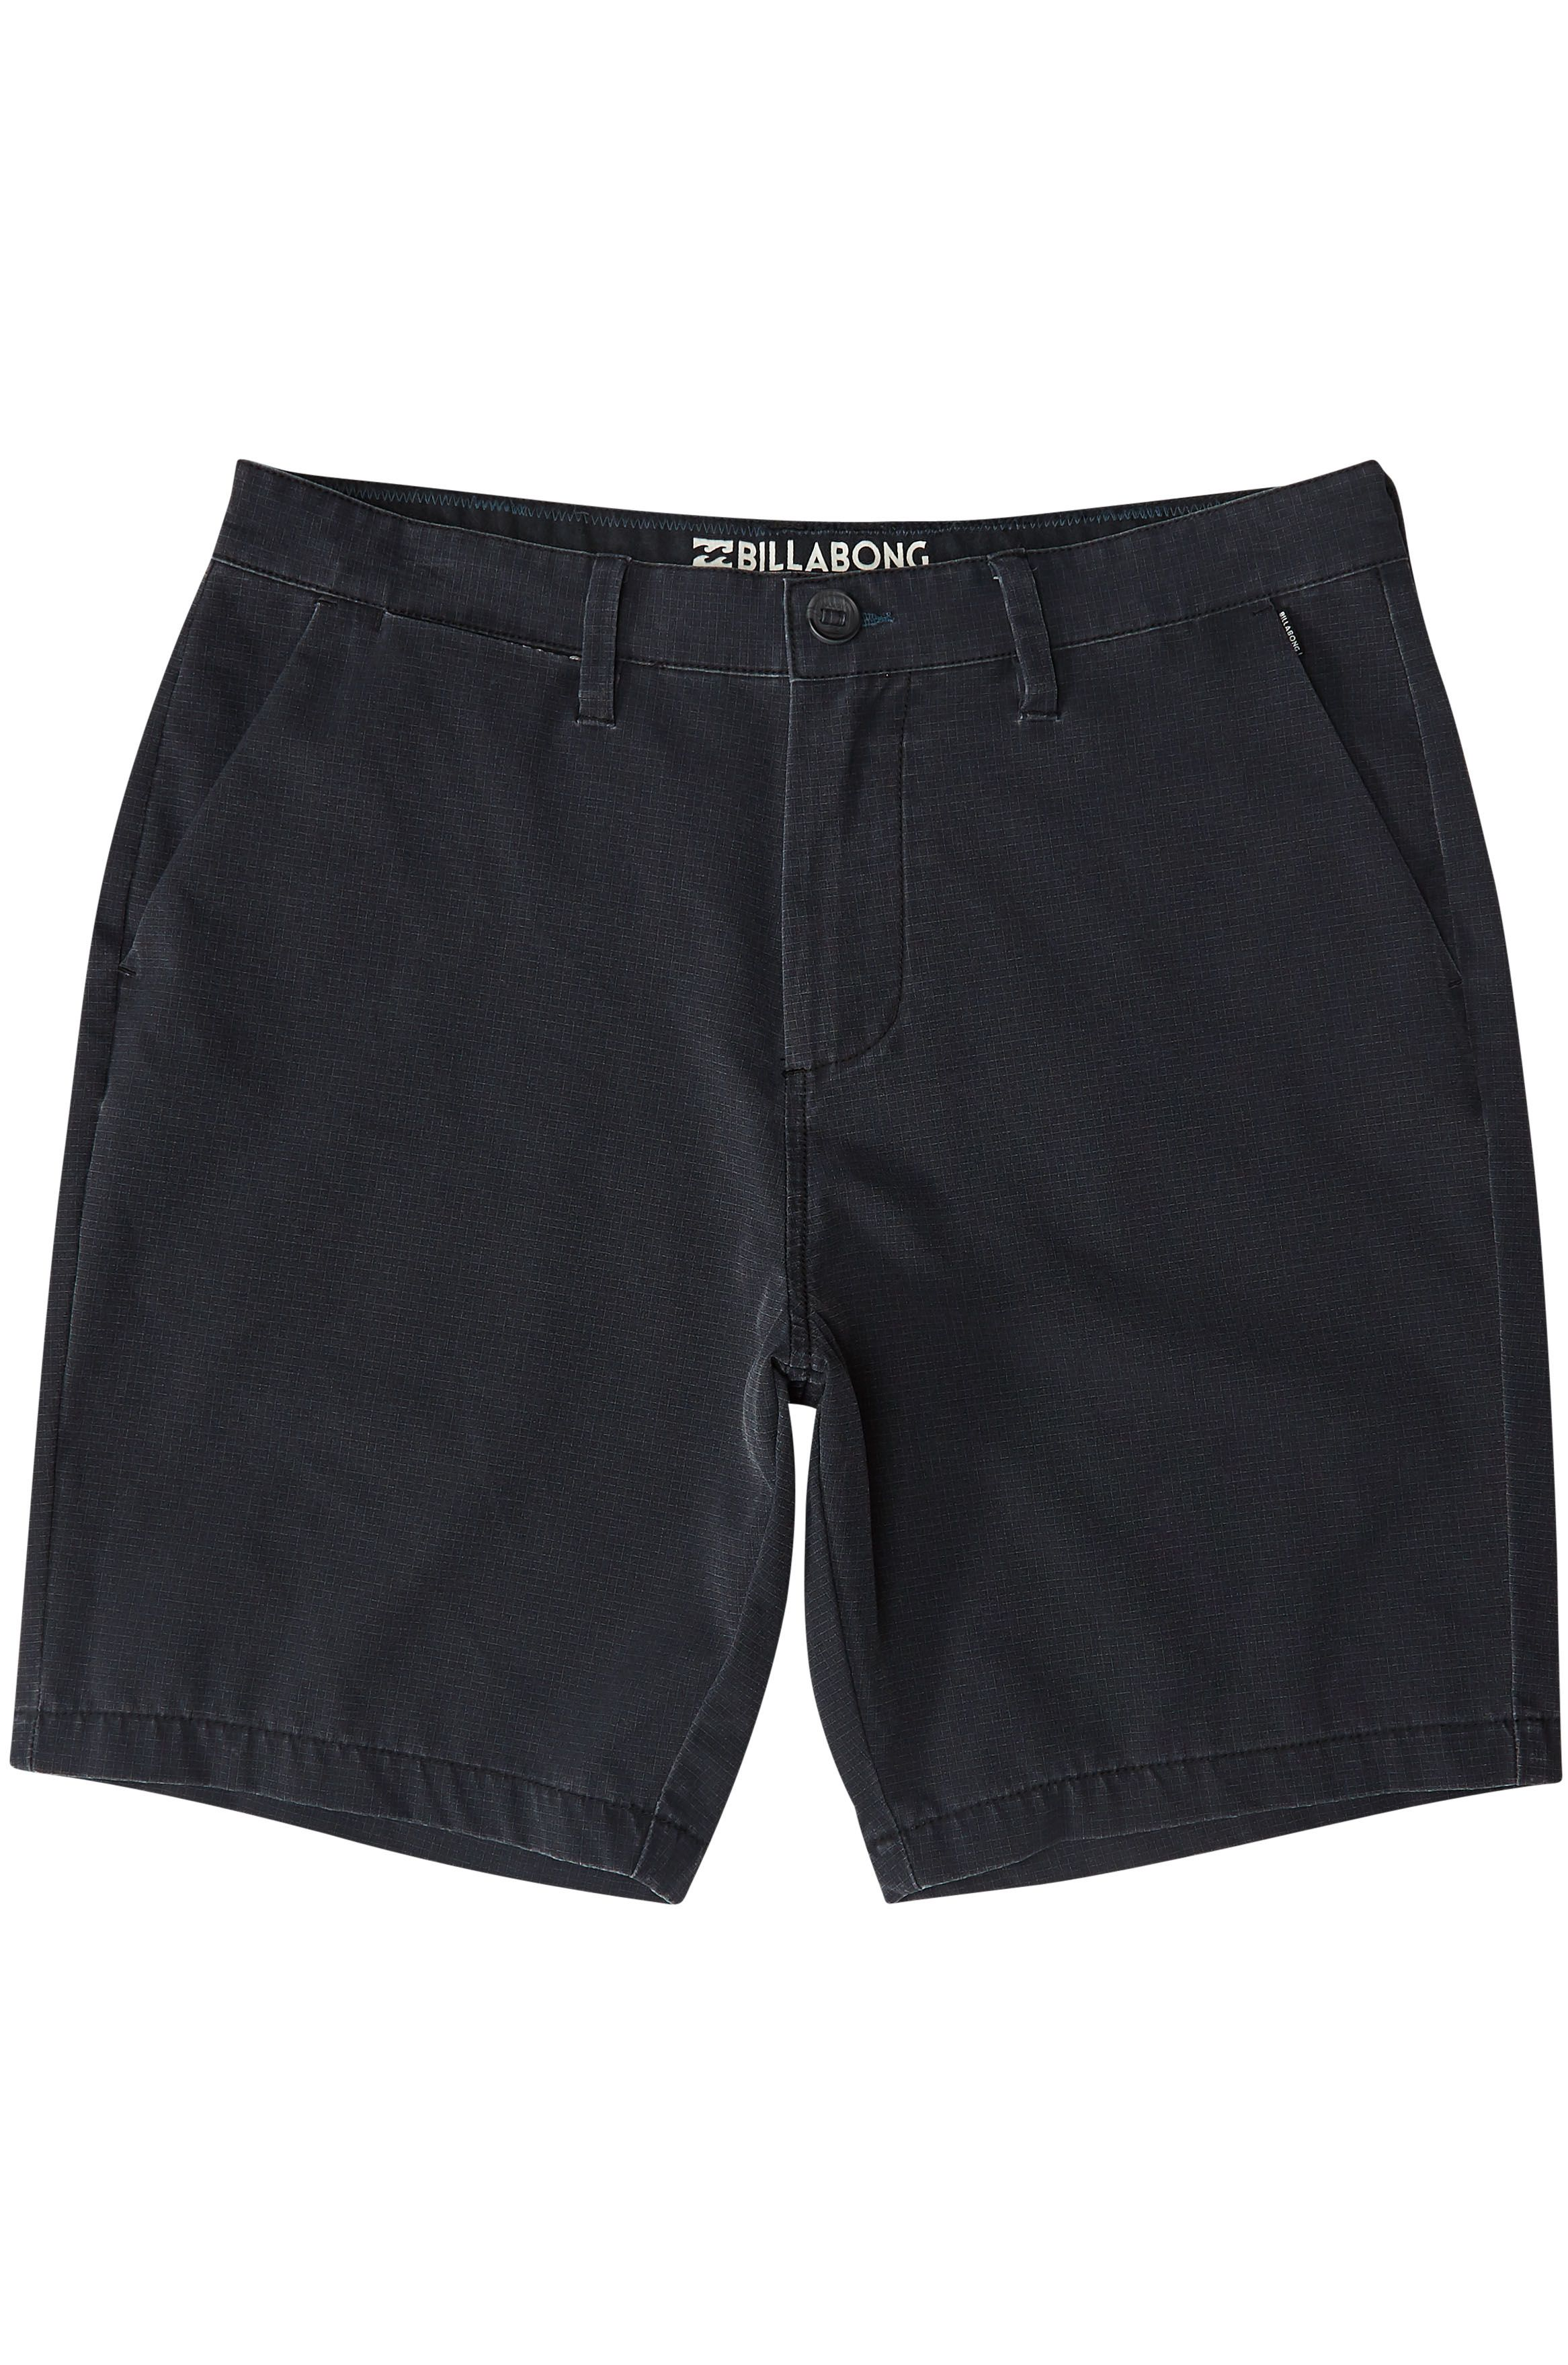 Walkshorts Billabong NEW ORDER X RIPSTOP Black